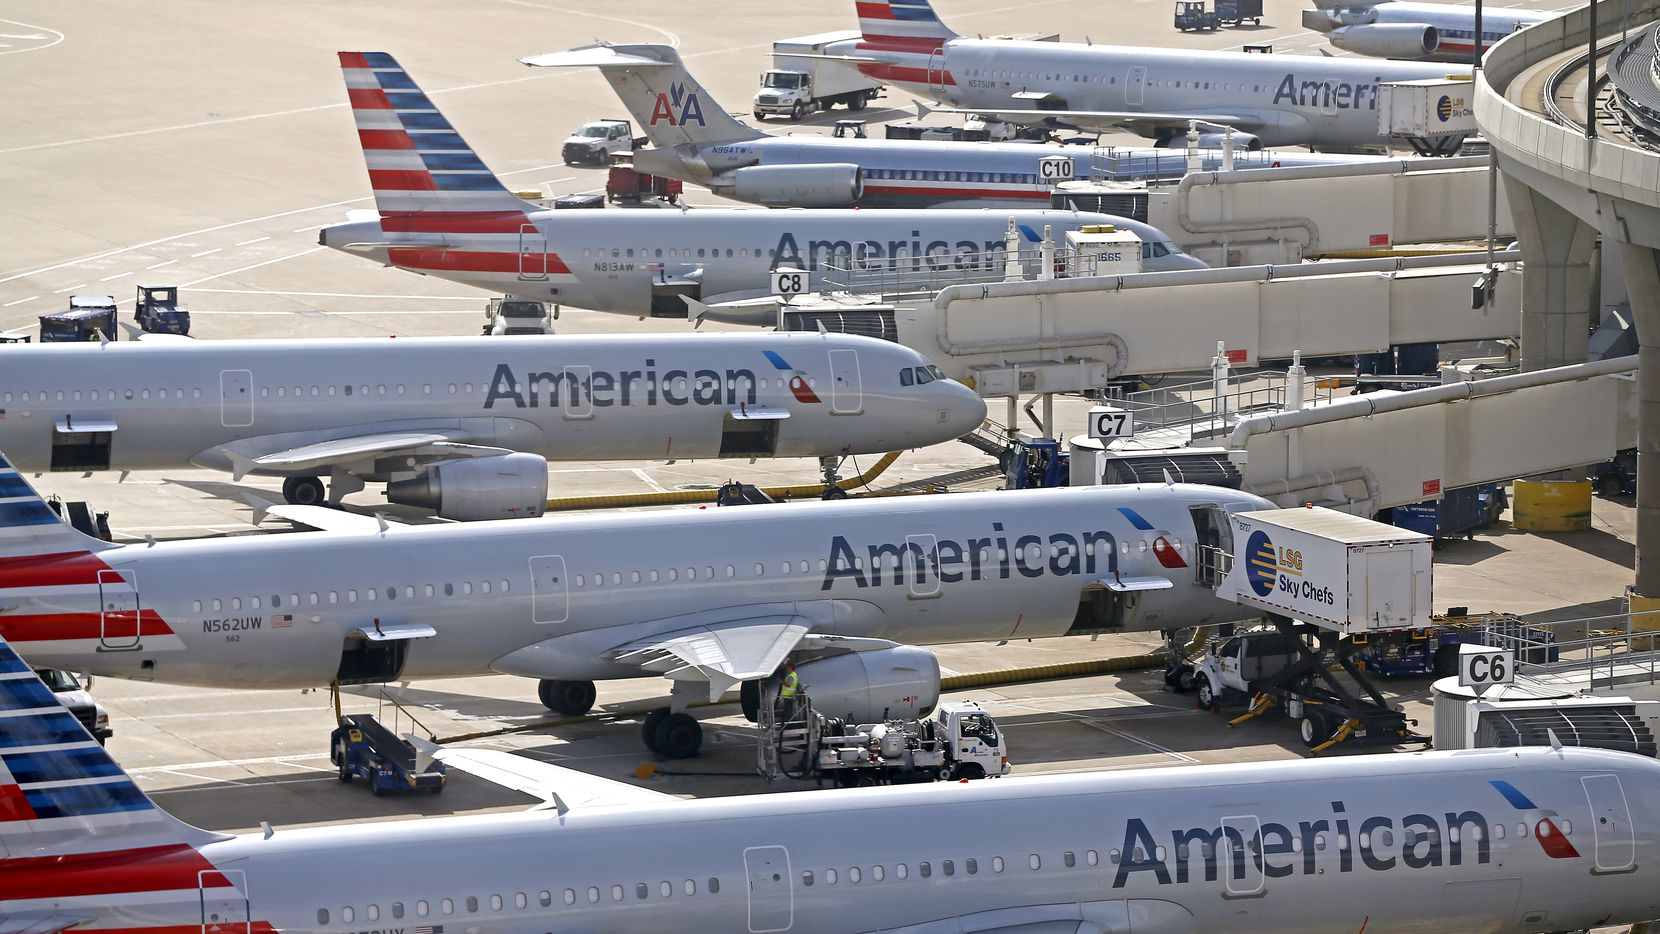 A line of American Airline airplanes at gates at Dallas/Fort Worth International Airport in DFW Airport, Texas, Friday, Aug. 18, 2017. (Jae S. Lee/The Dallas Morning News)